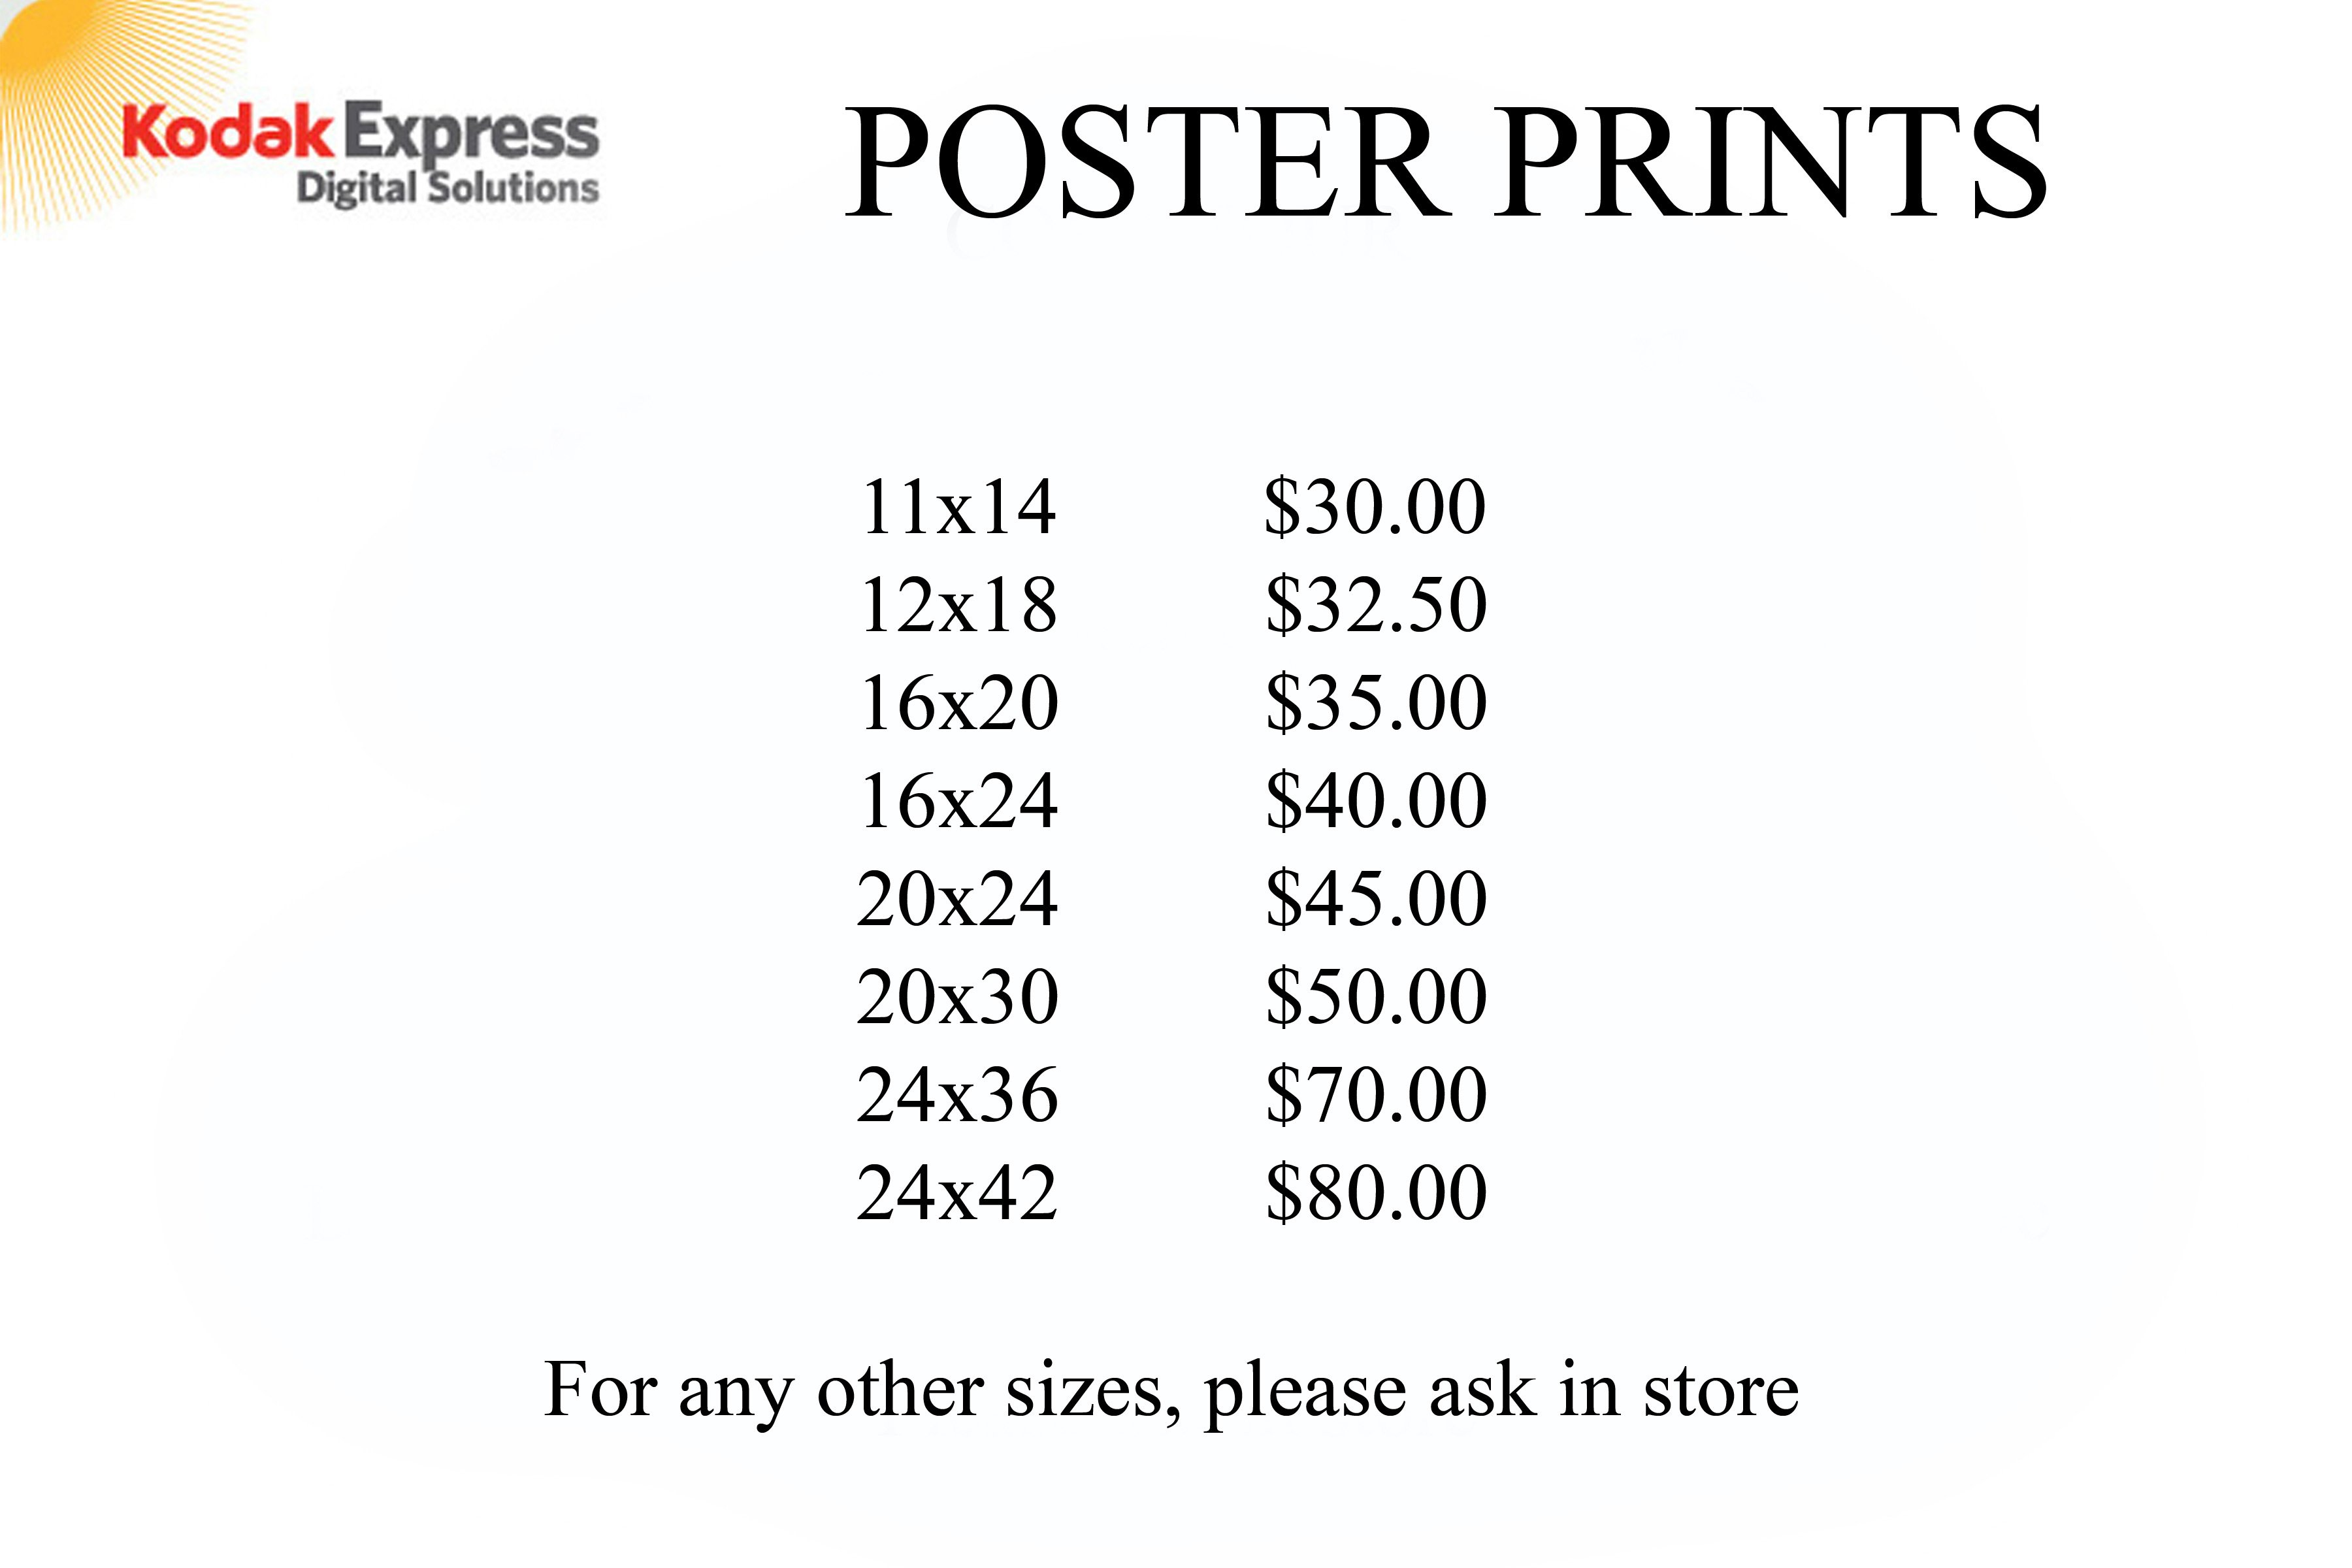 Kodak Express Digital Solutions' rate list for Poster Prints